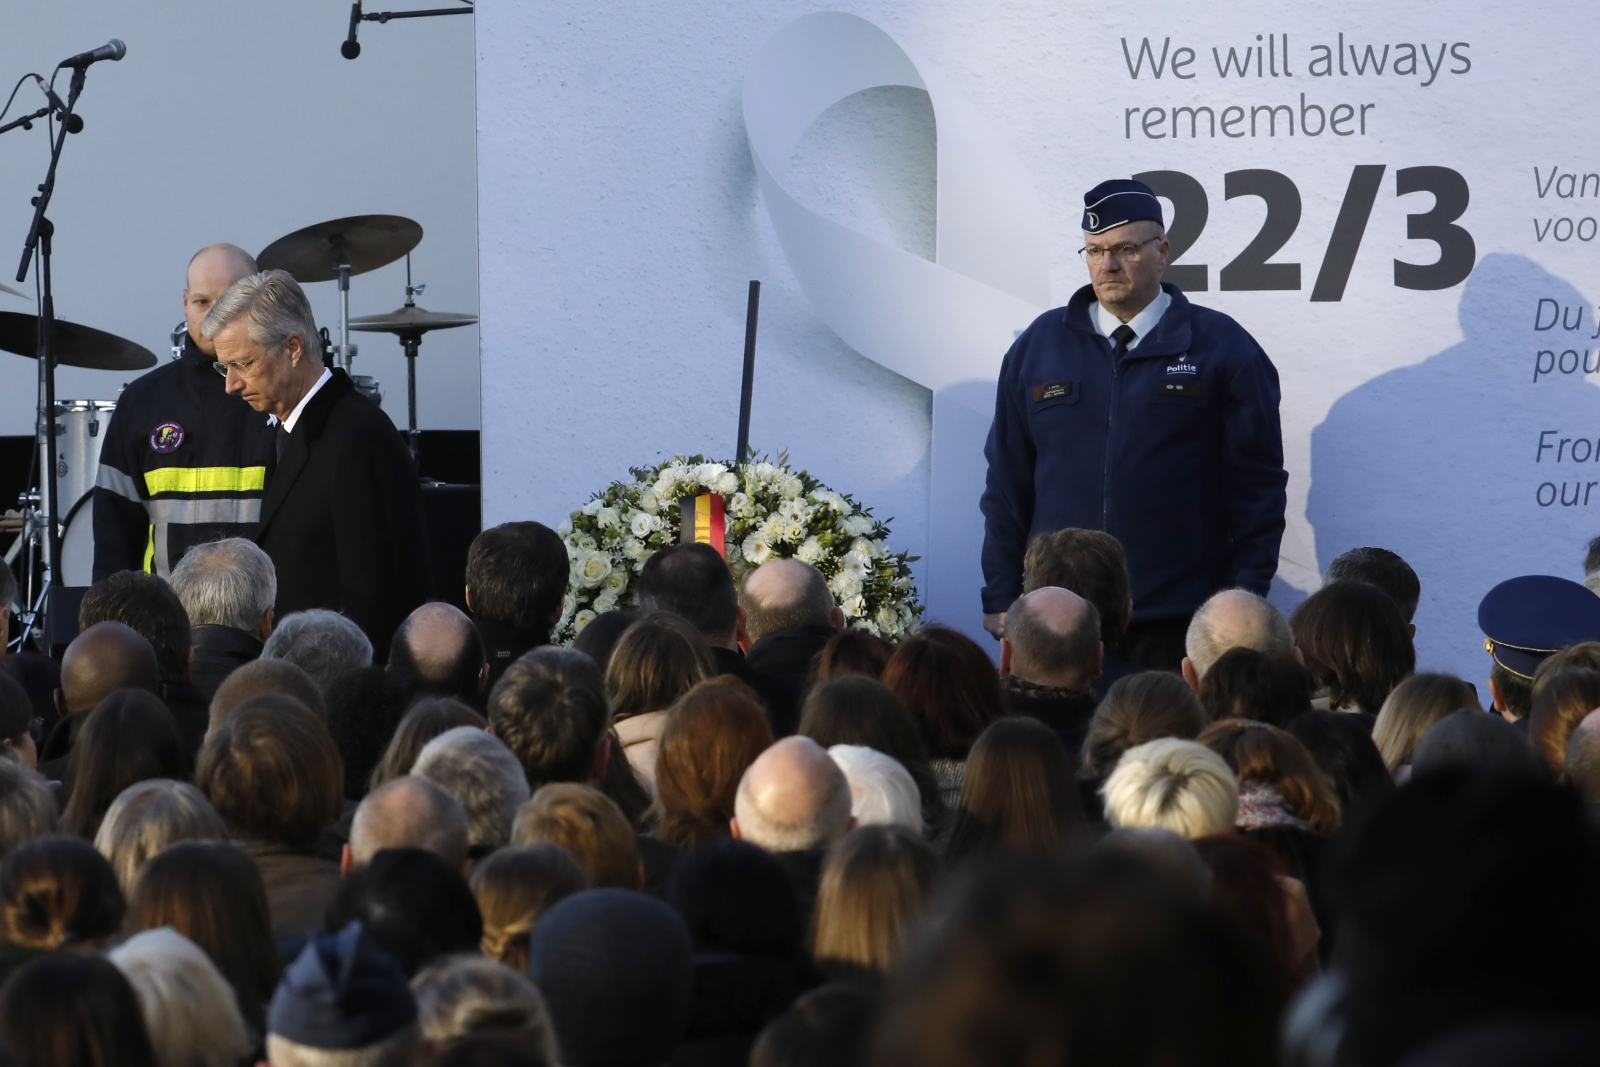 Brussels bombing anniversary